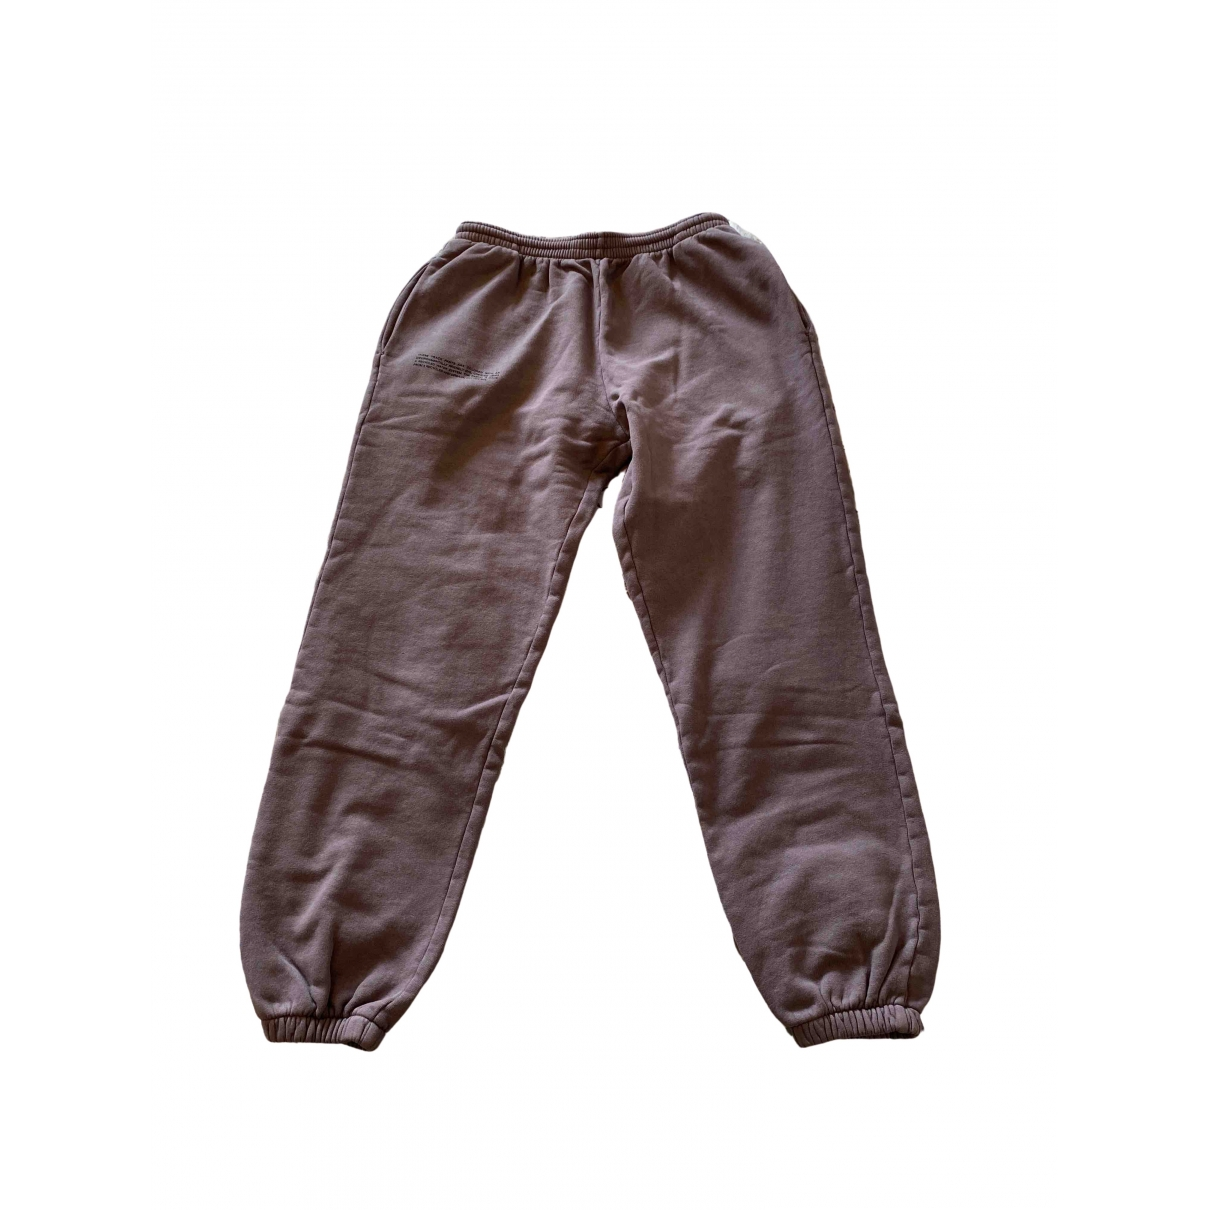 The Pangaia \N Purple Cotton Trousers for Women M International